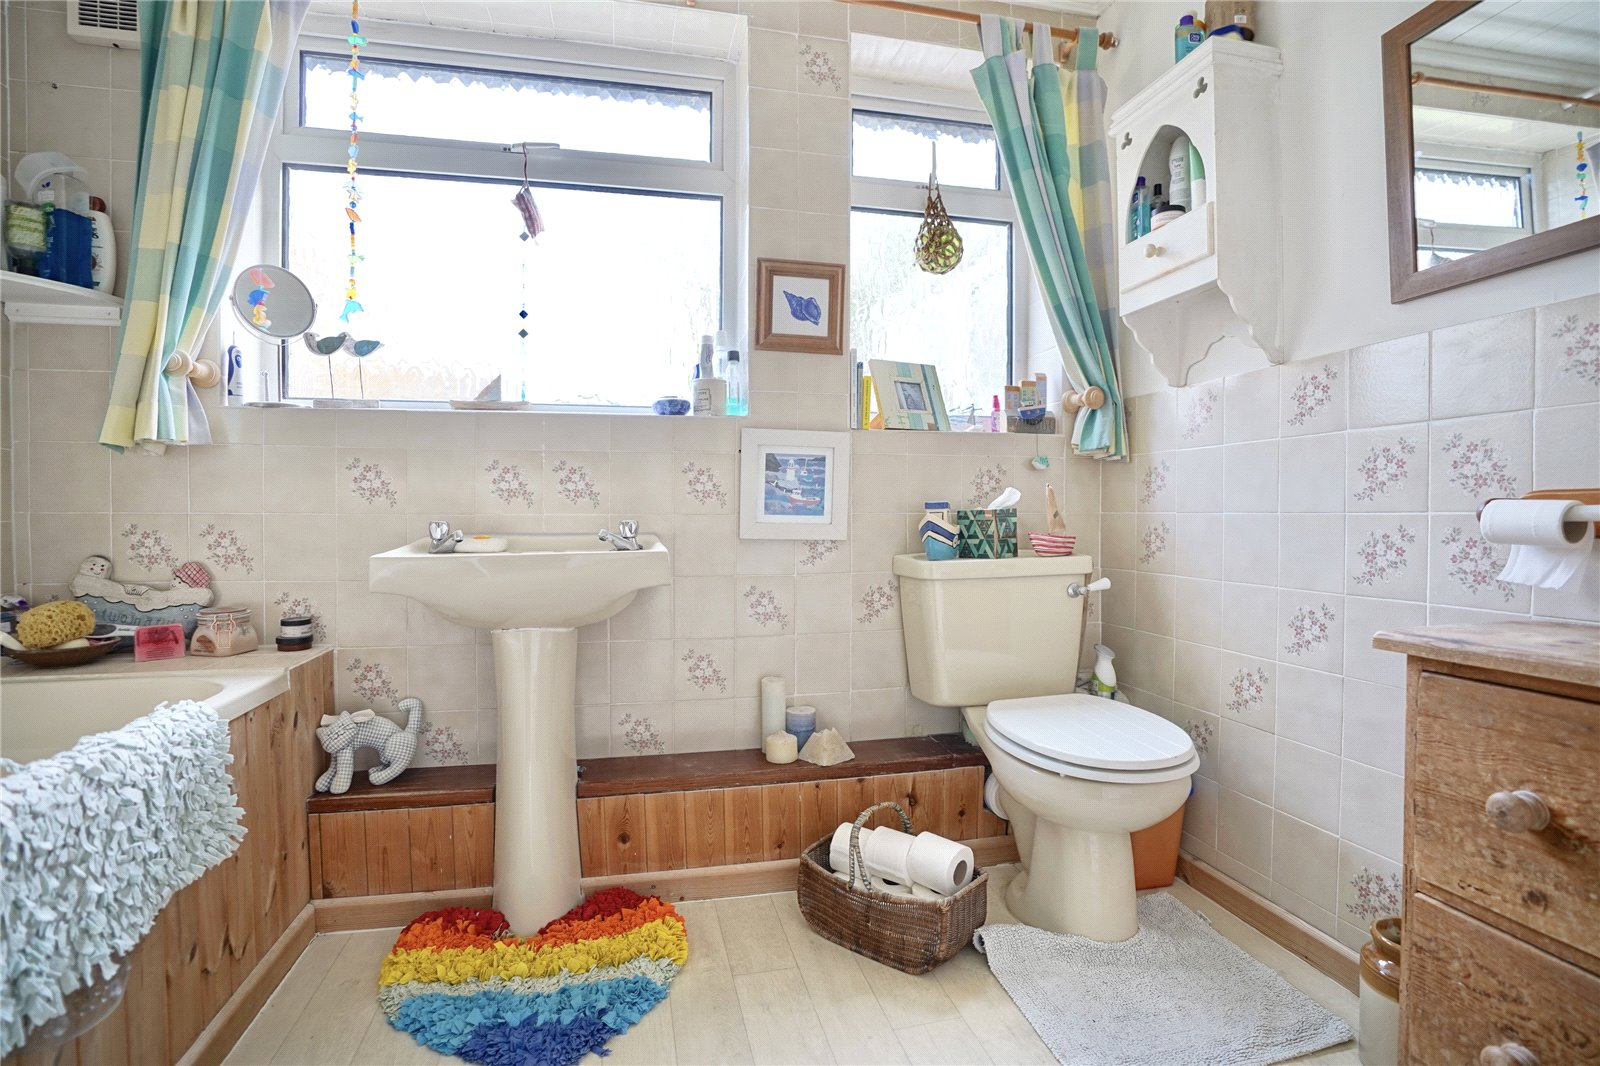 3 bed house for sale in Hemingford Grey, PE28 9BS 9